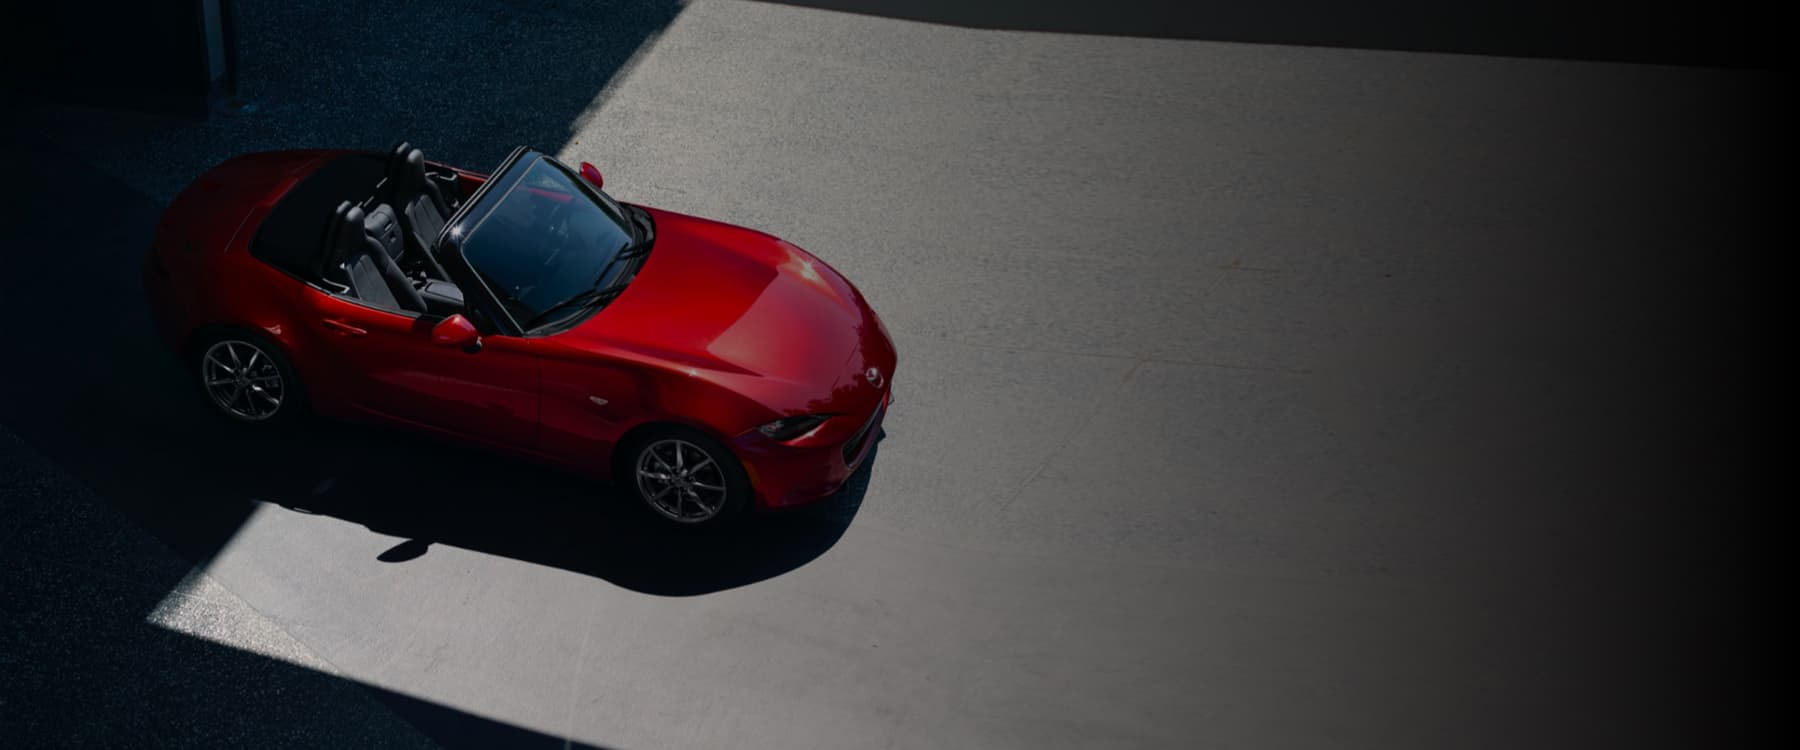 Red Mazda convertible being driven outside.